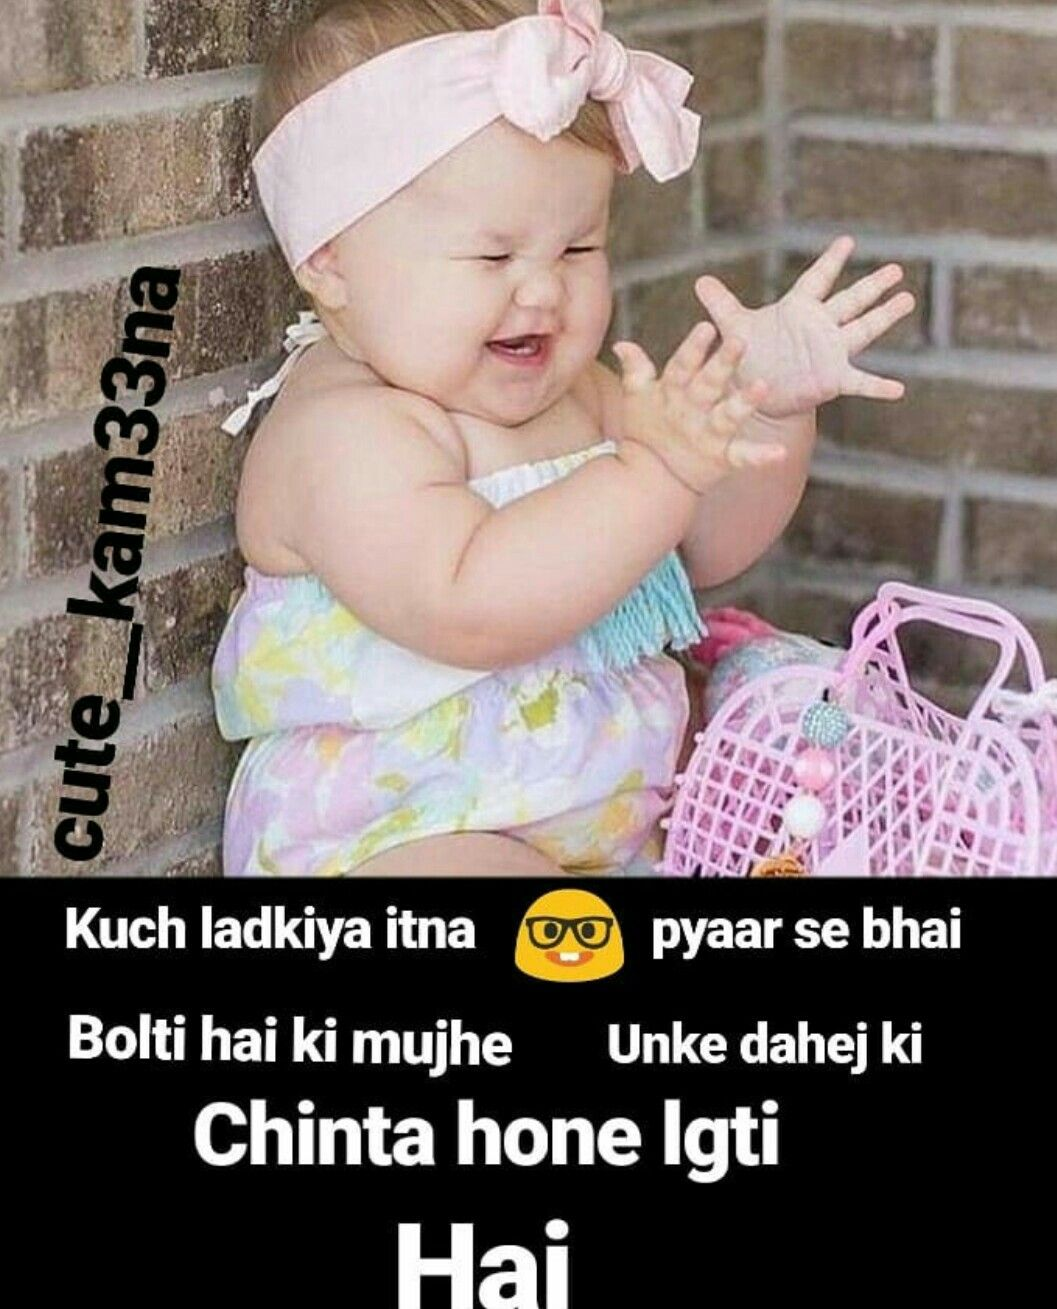 Pin By Salquien Naziya On Naaz Funny Girl Quotes Cute Baby Quotes Girl Humor